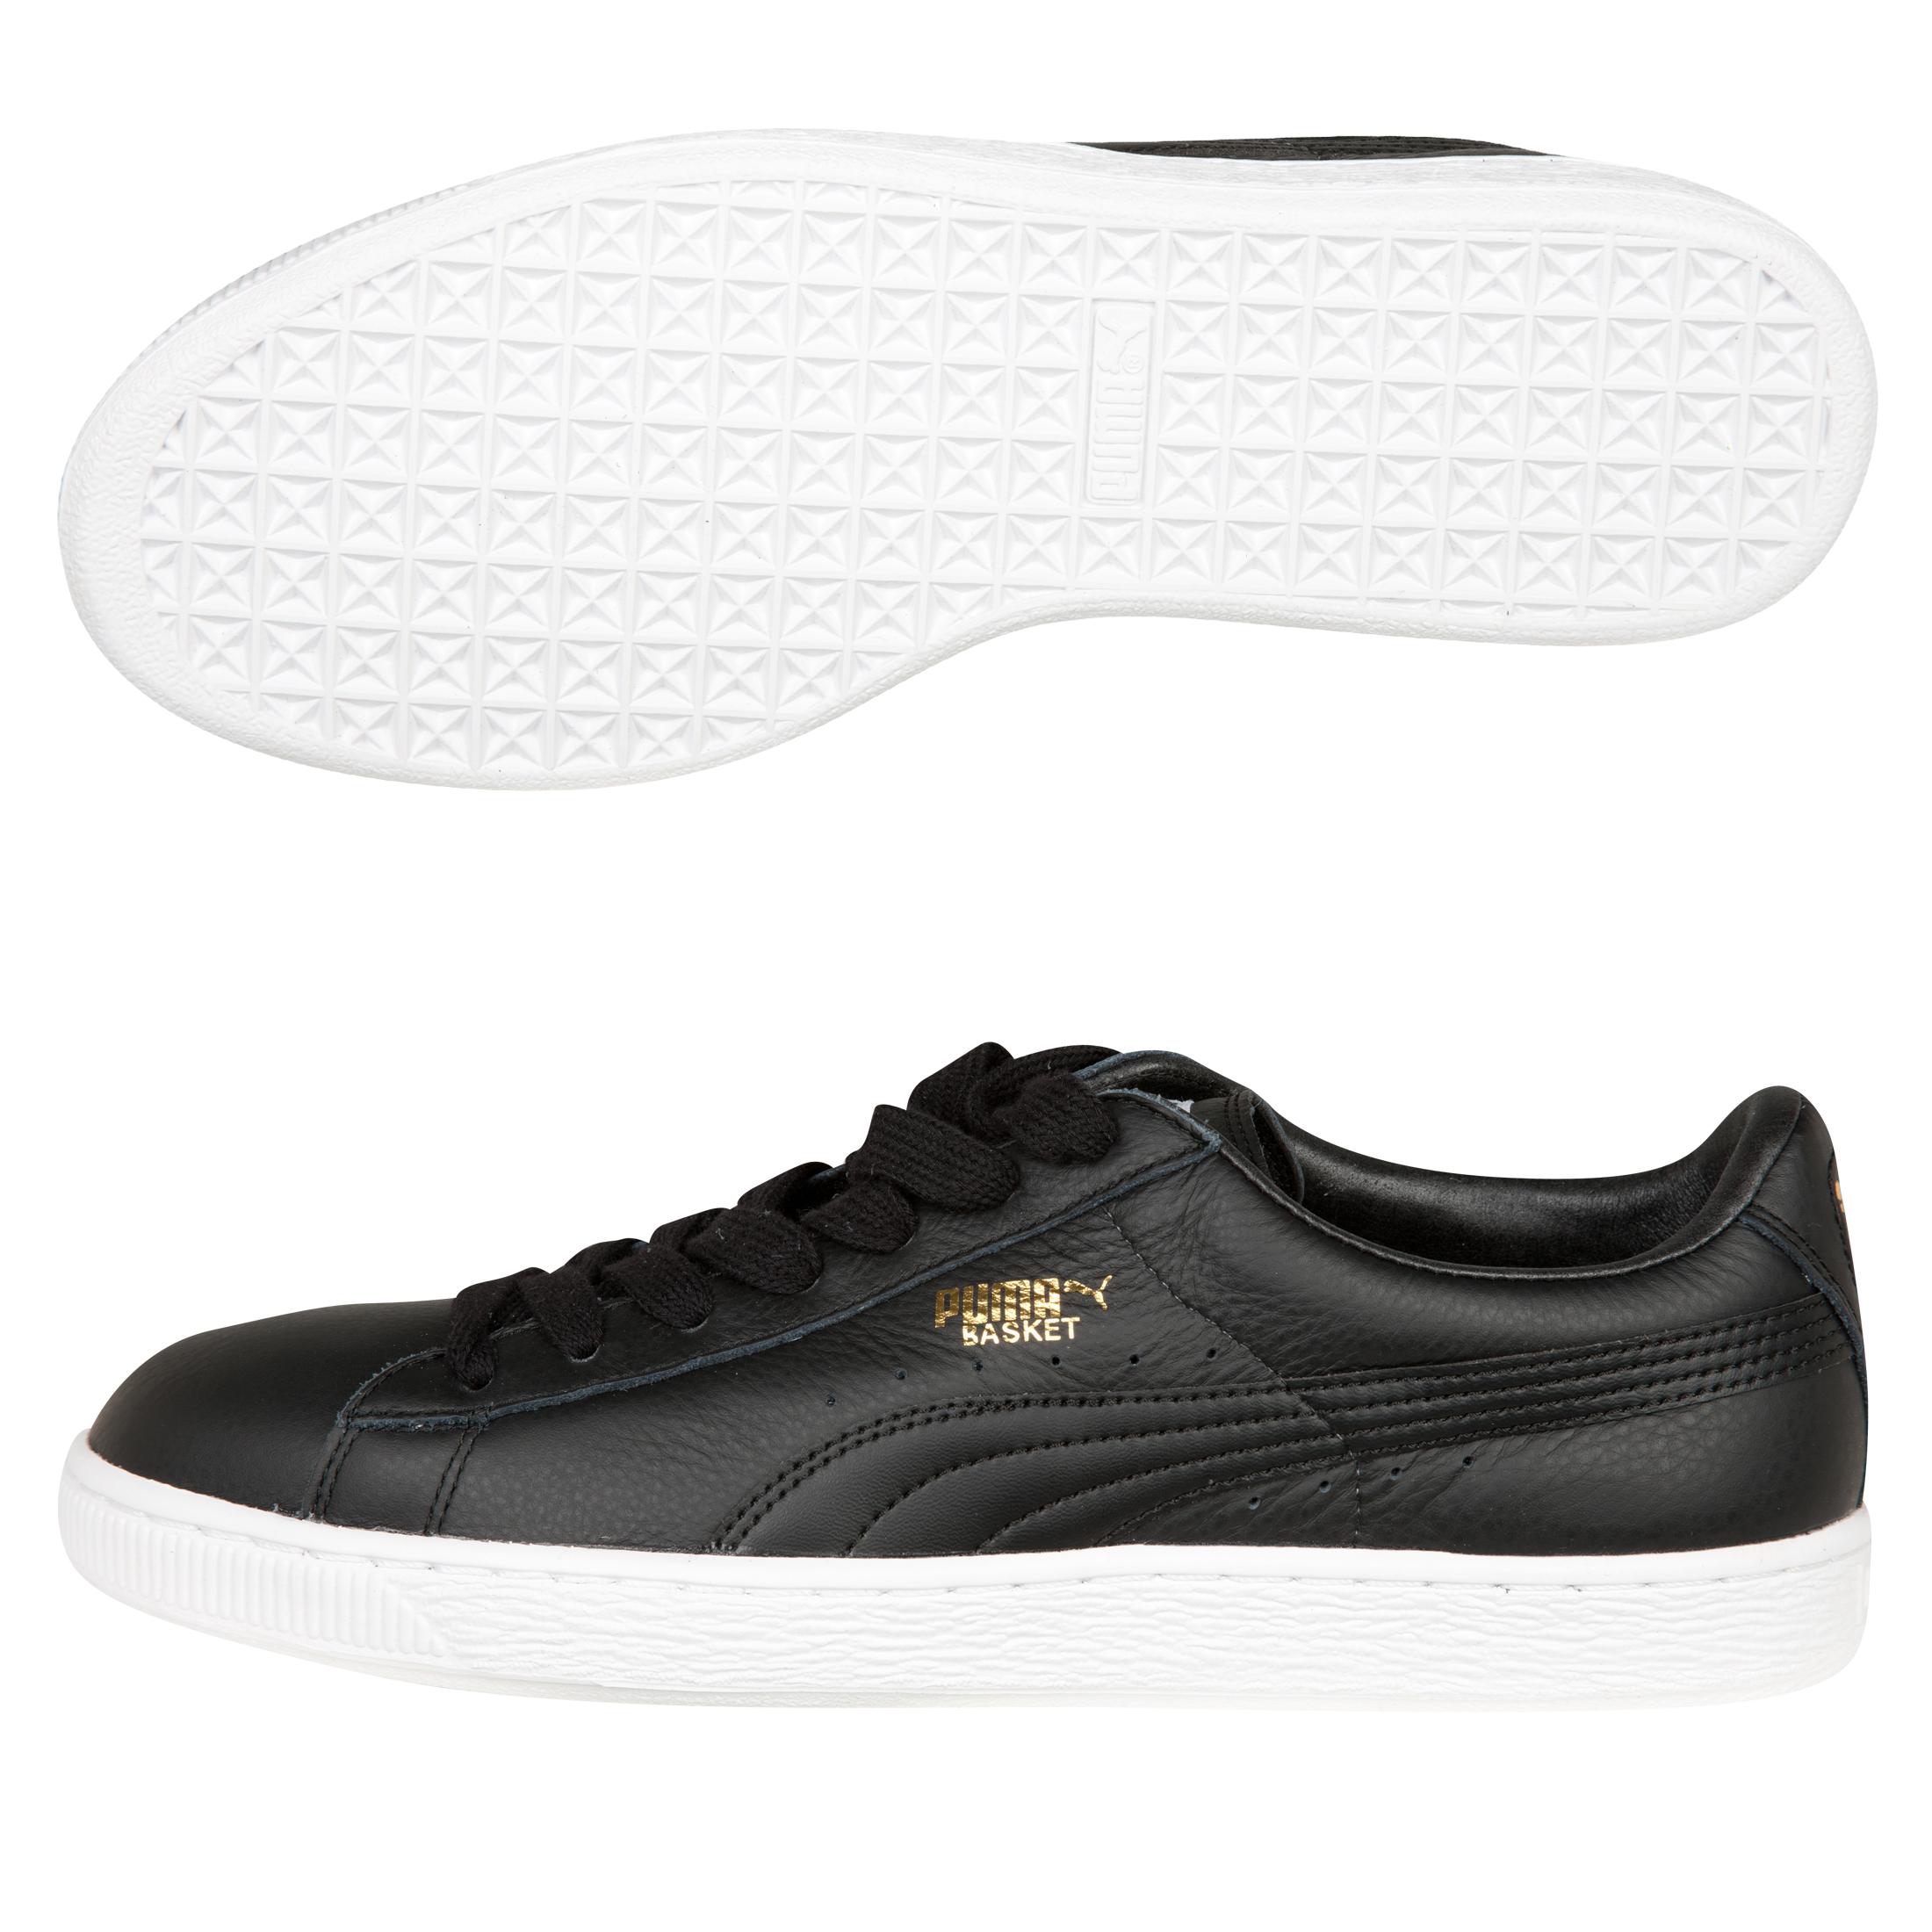 Puma Basket Classic Trainer - Black/White